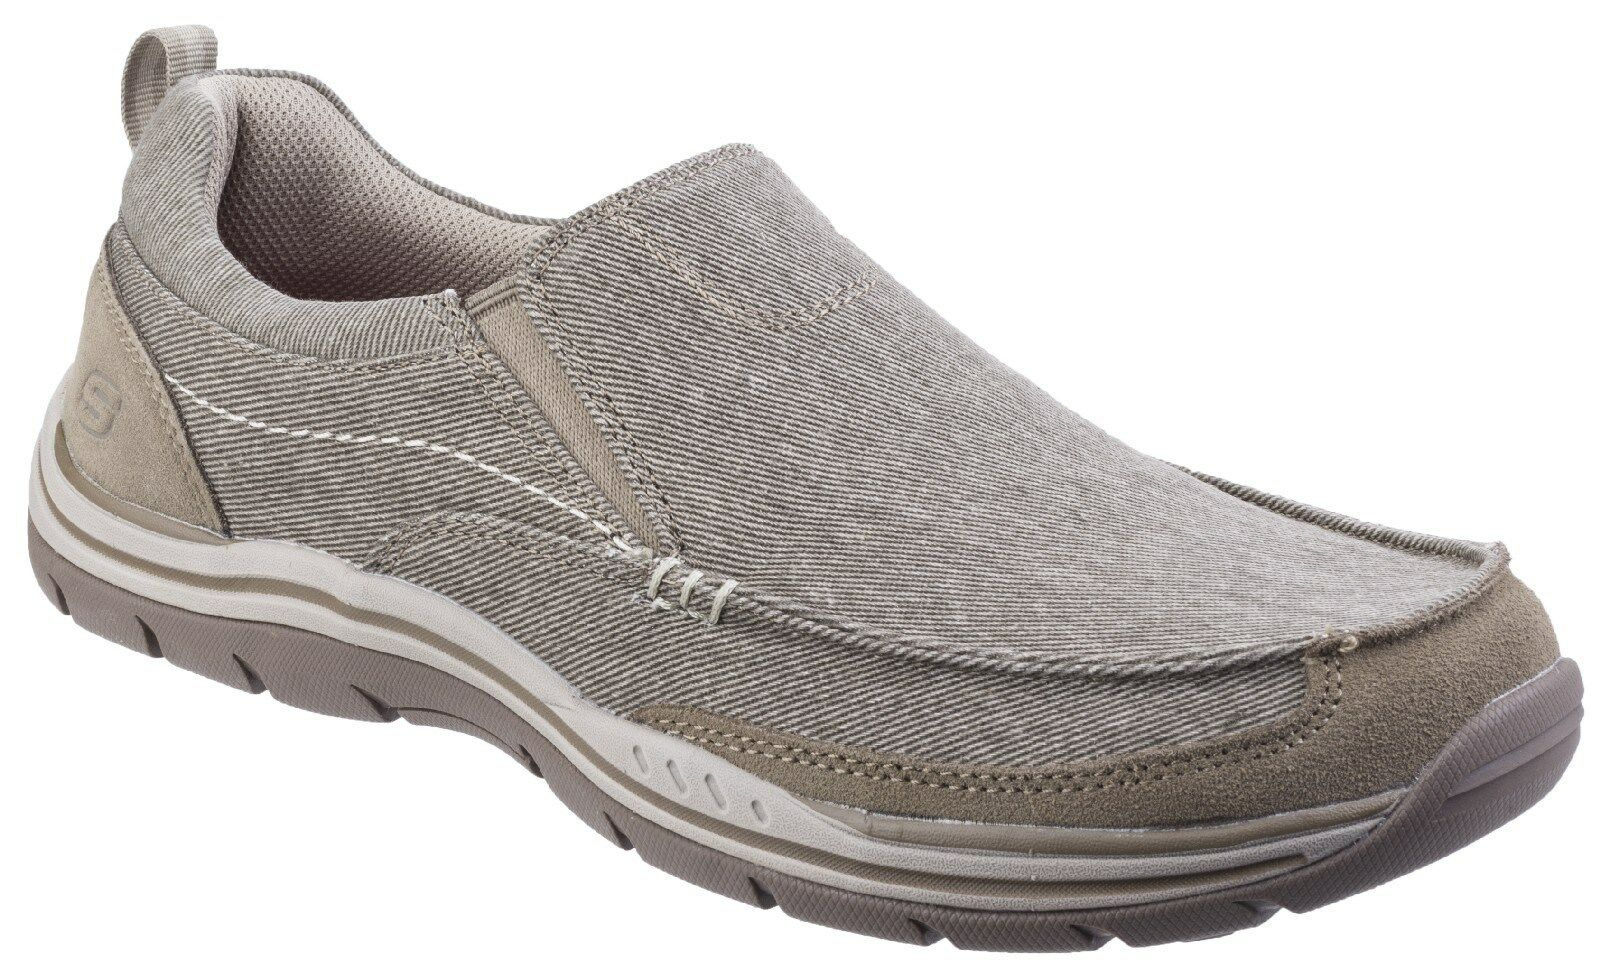 Skechers Expected Tomen Mens Memory Foam Slip On Canvas Go Walk Shoes UK6-12 New shoes for men and women, limited time discount